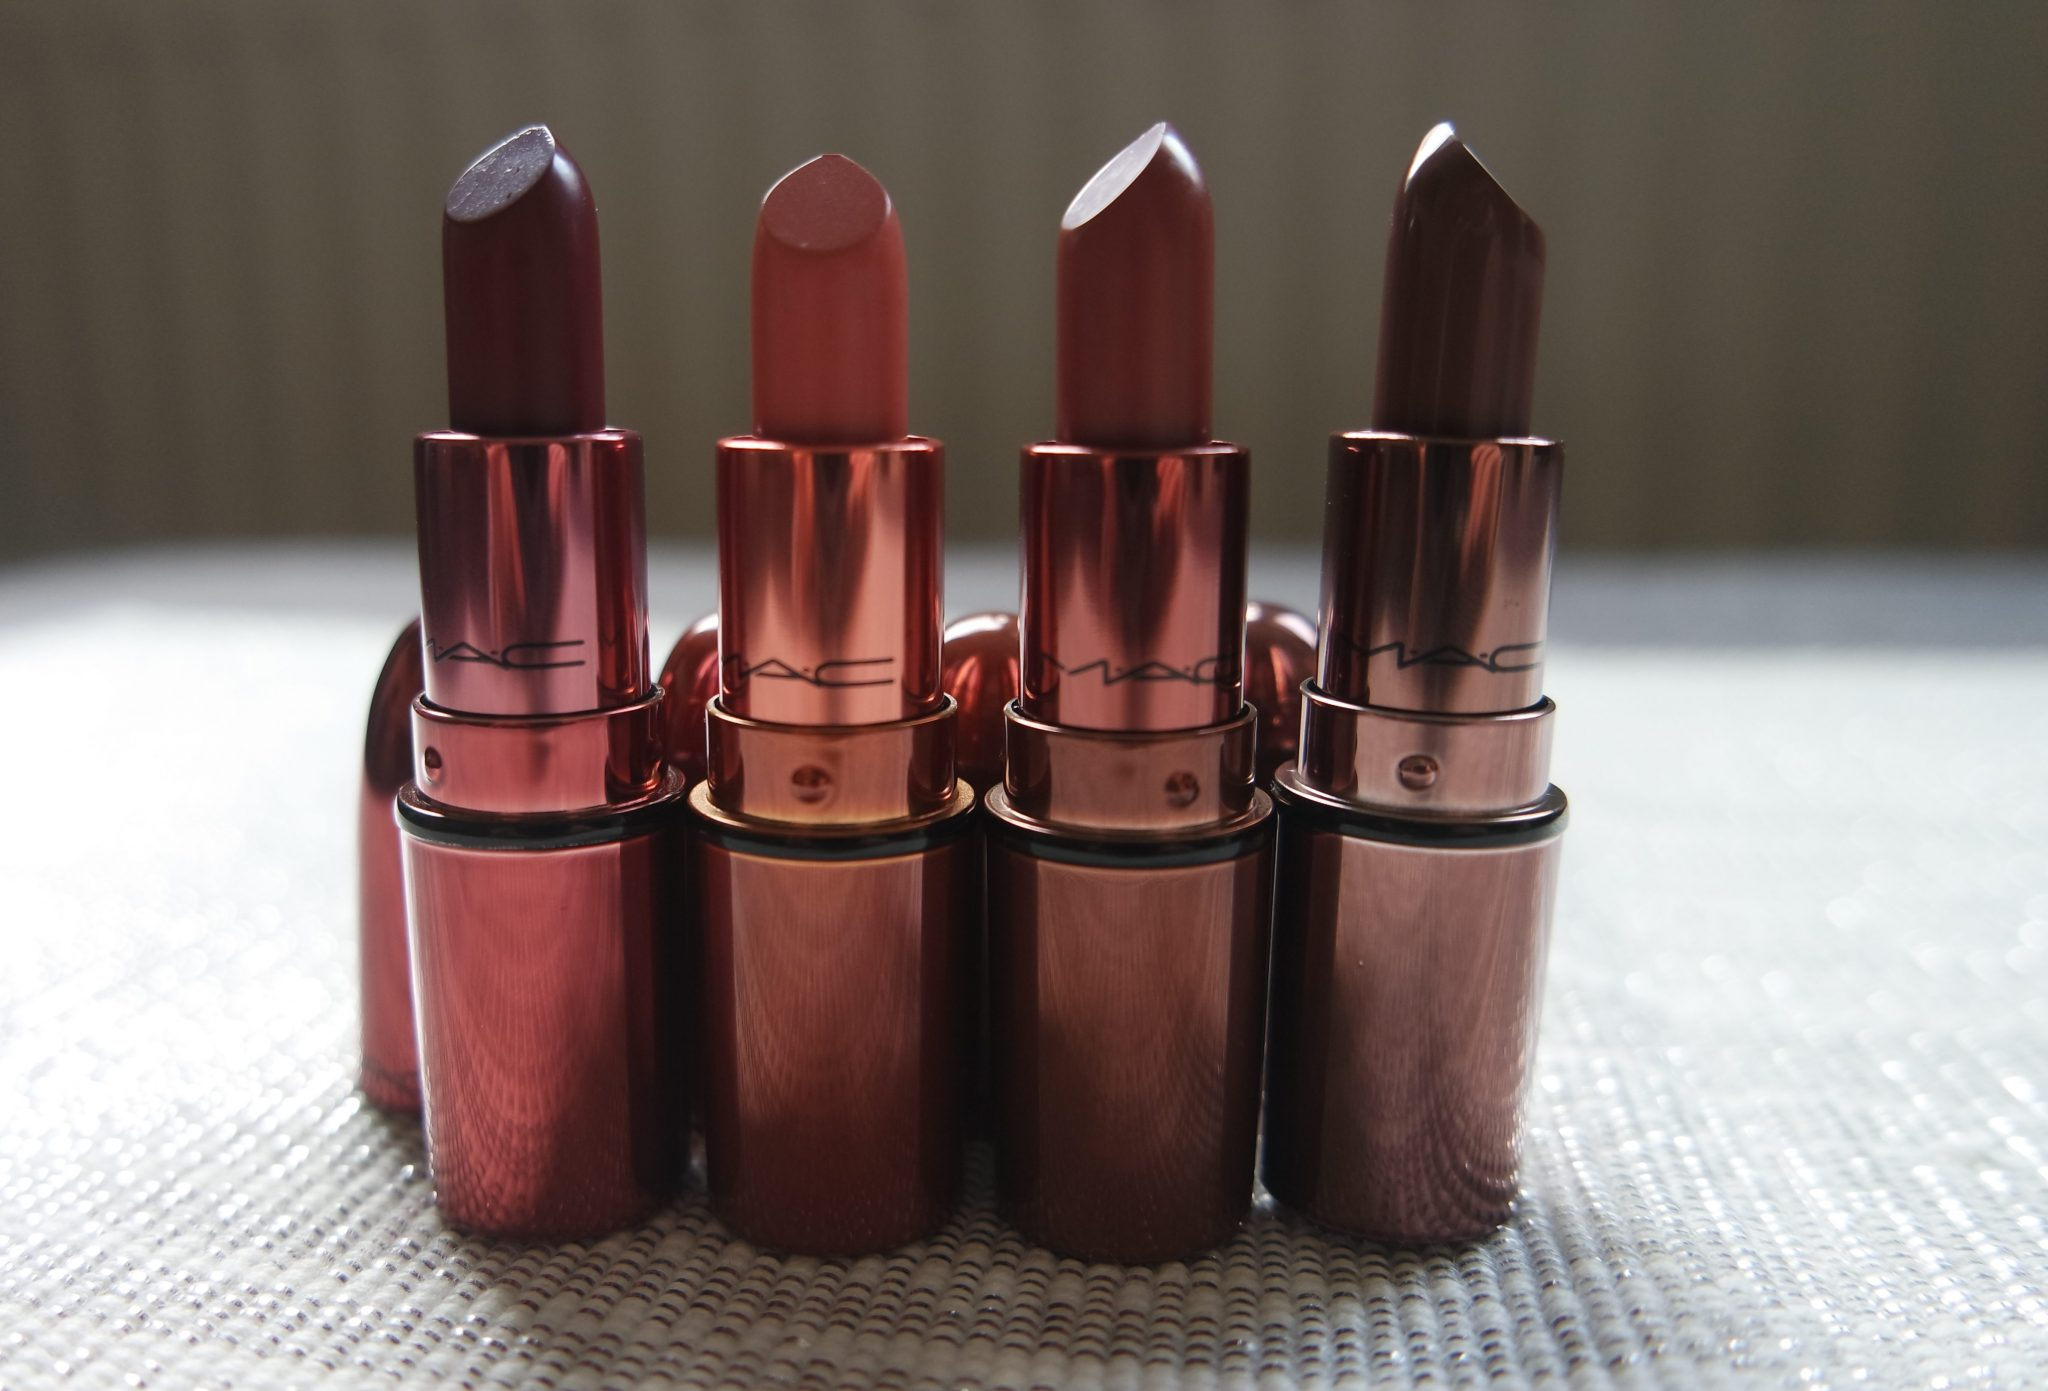 mac snowball lipstick kit review swatches diva velvet teddy whirl stone